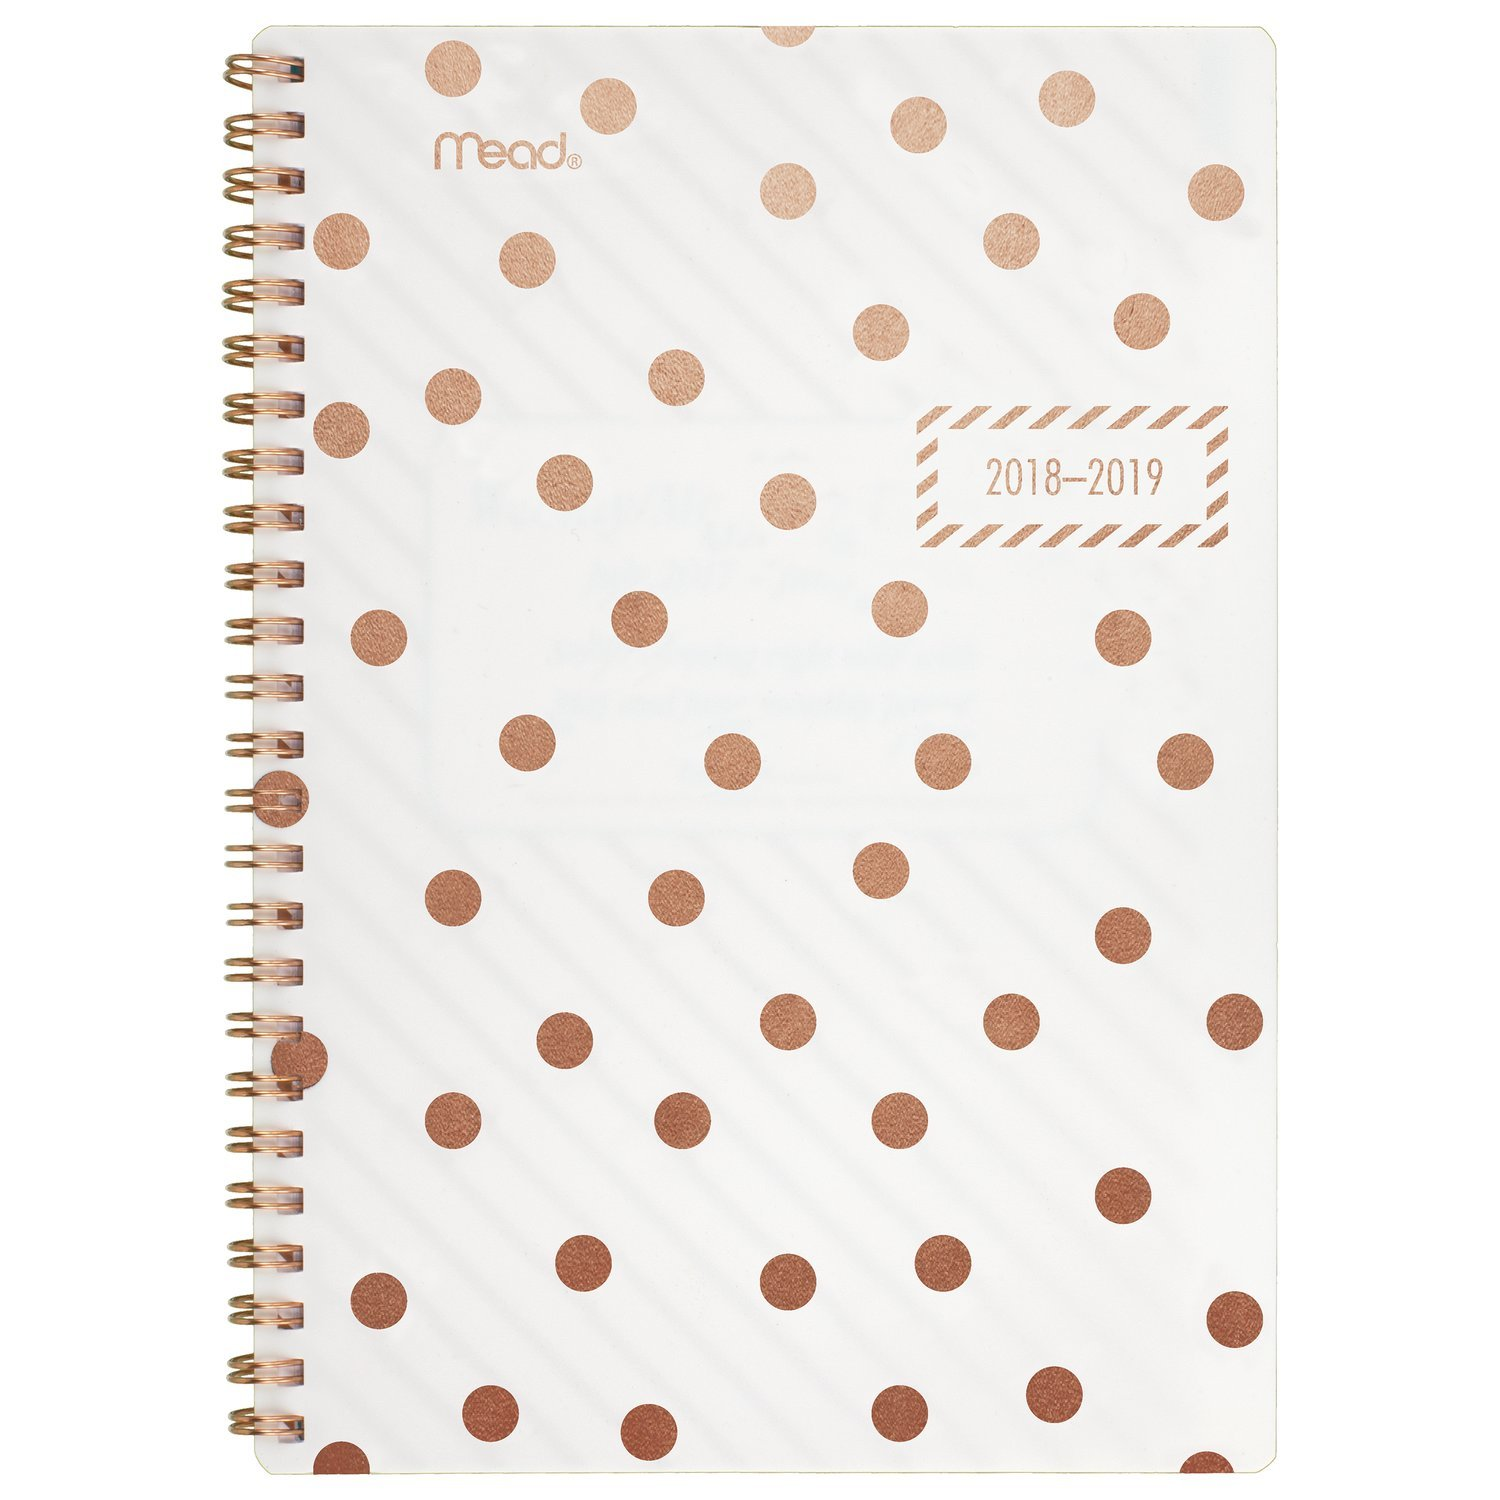 Mead Academic Weekly/Monthly Planner, July 2018 - June 2019, 5-1/2 x 8-1/2, Gold & Bold, Dots (CAW408D1) 5-1/2 x 8-1/2 ACCO Brands CAW408D119